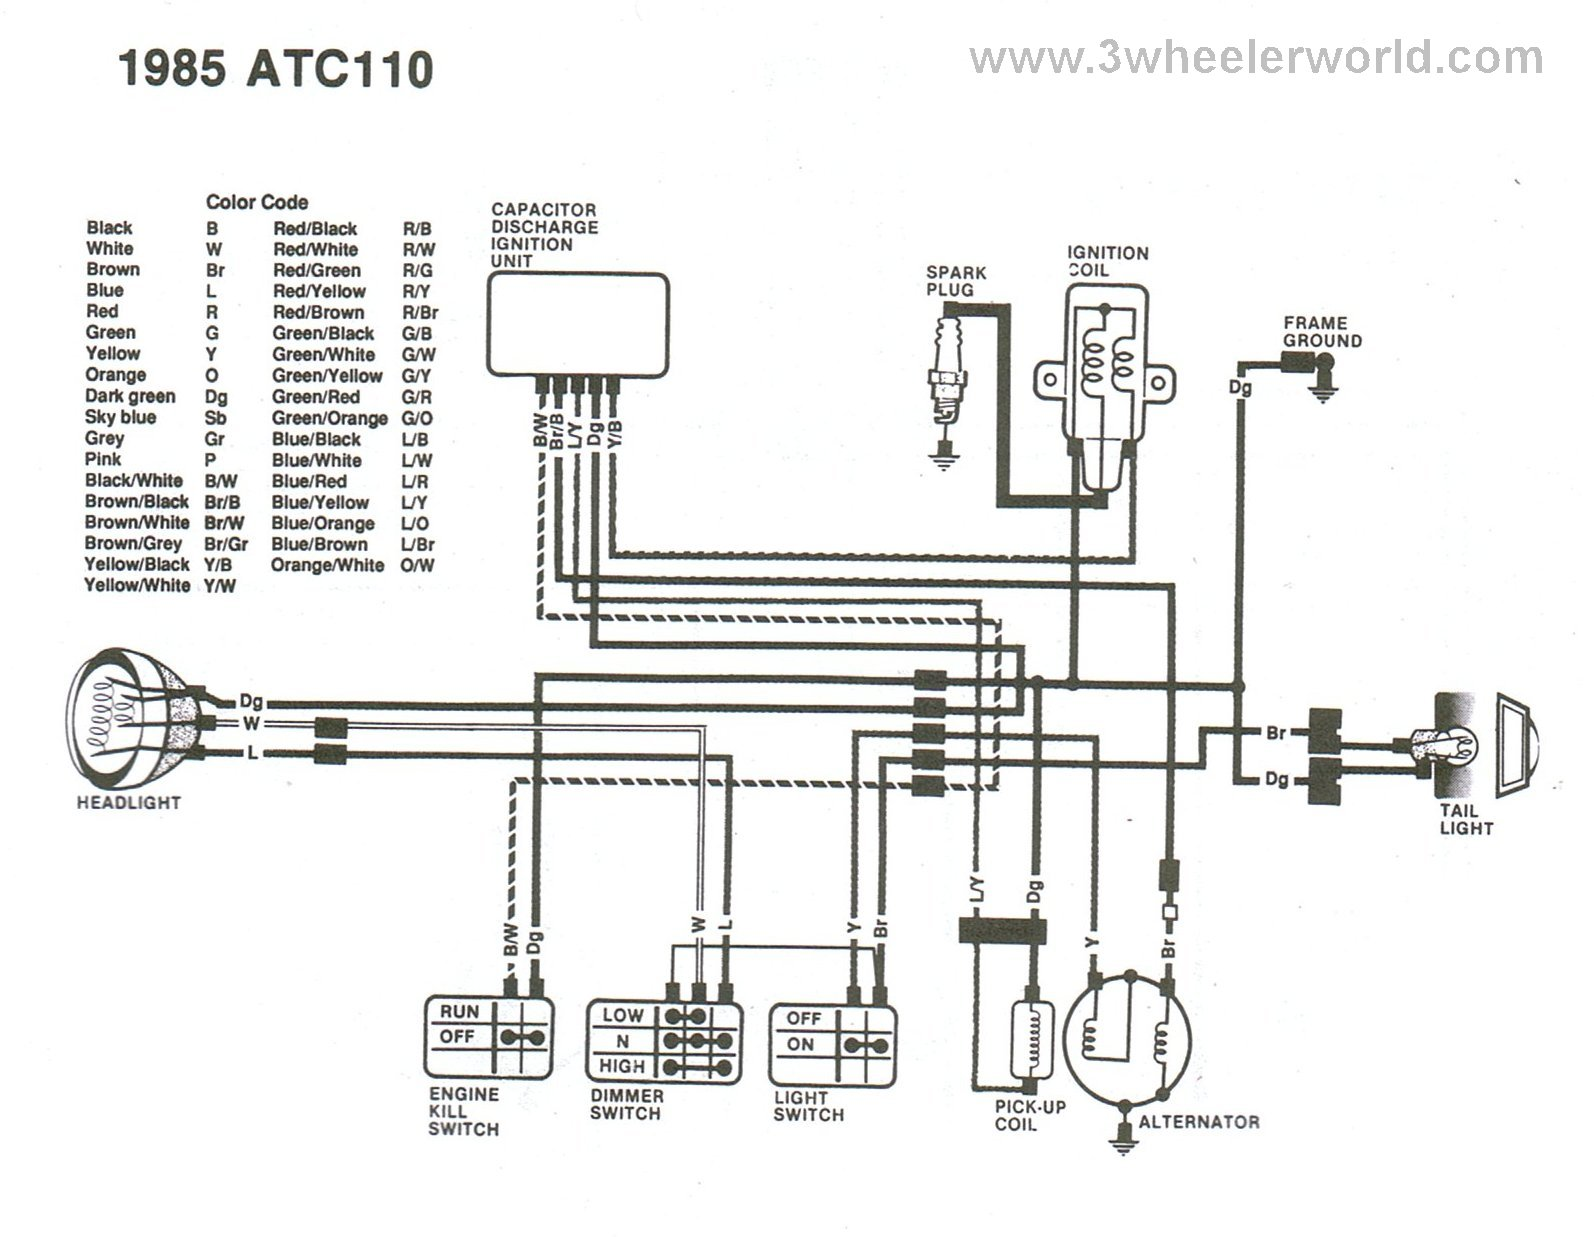 3 wheeler world tech help honda wiring diagrams aluma trailer wiring diagram atc 800 wiring diagram #31